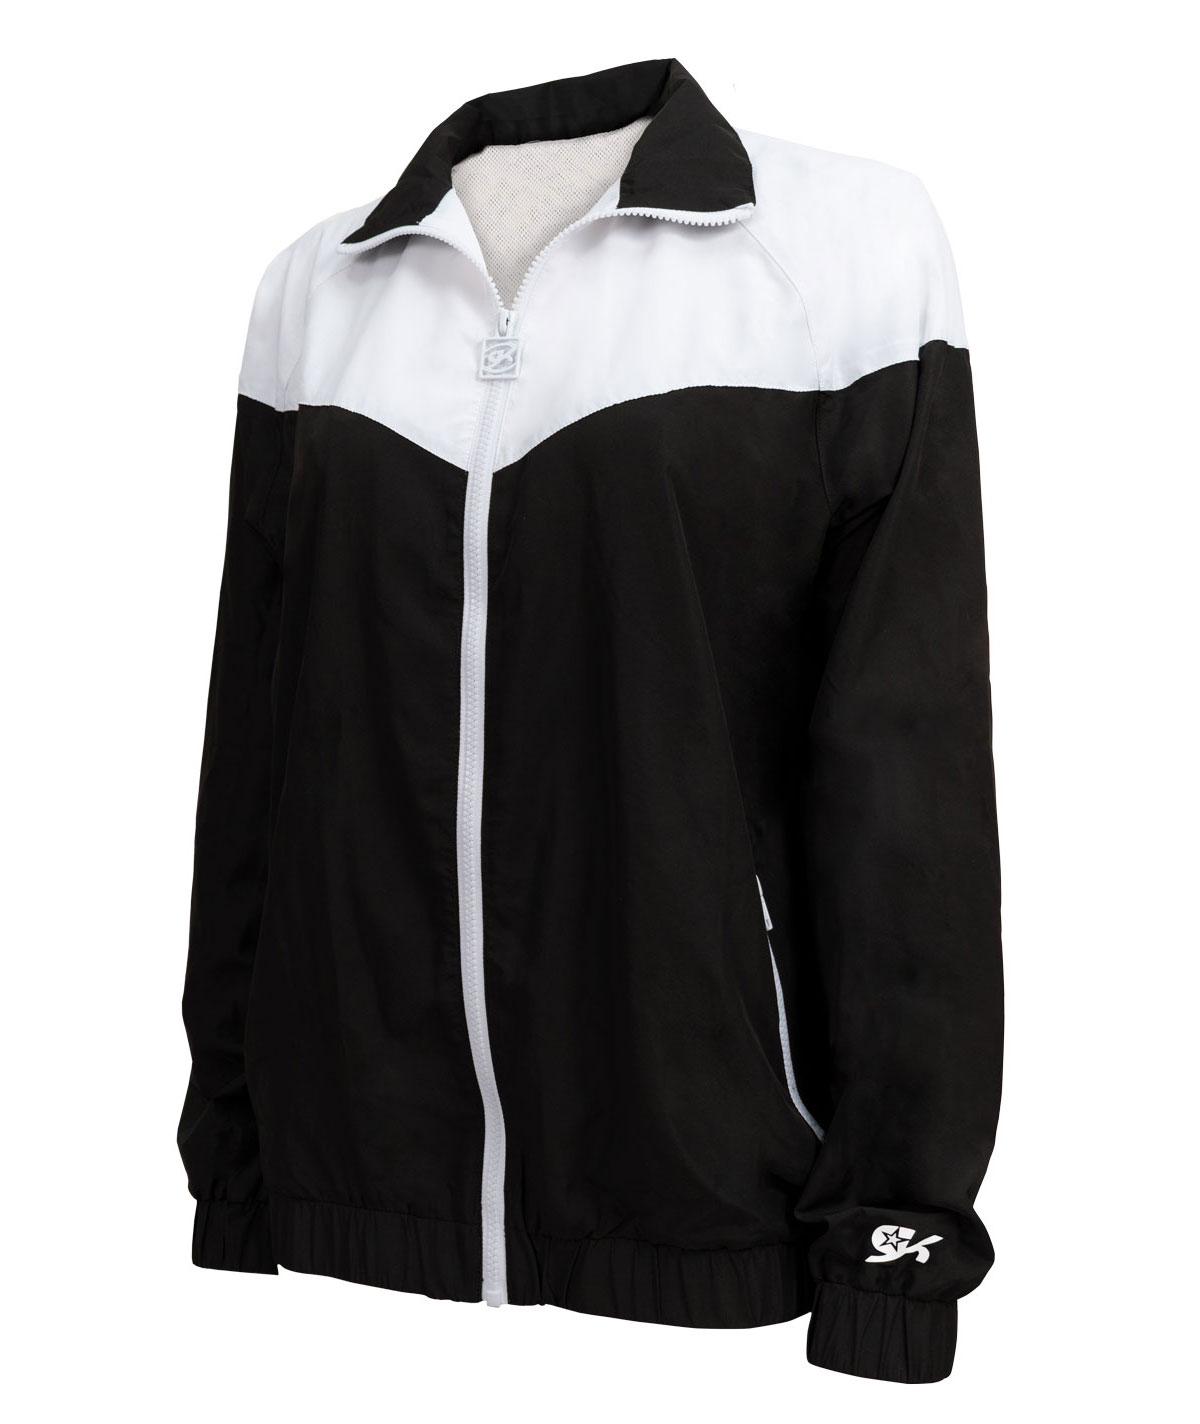 GK All Star Windbreaker